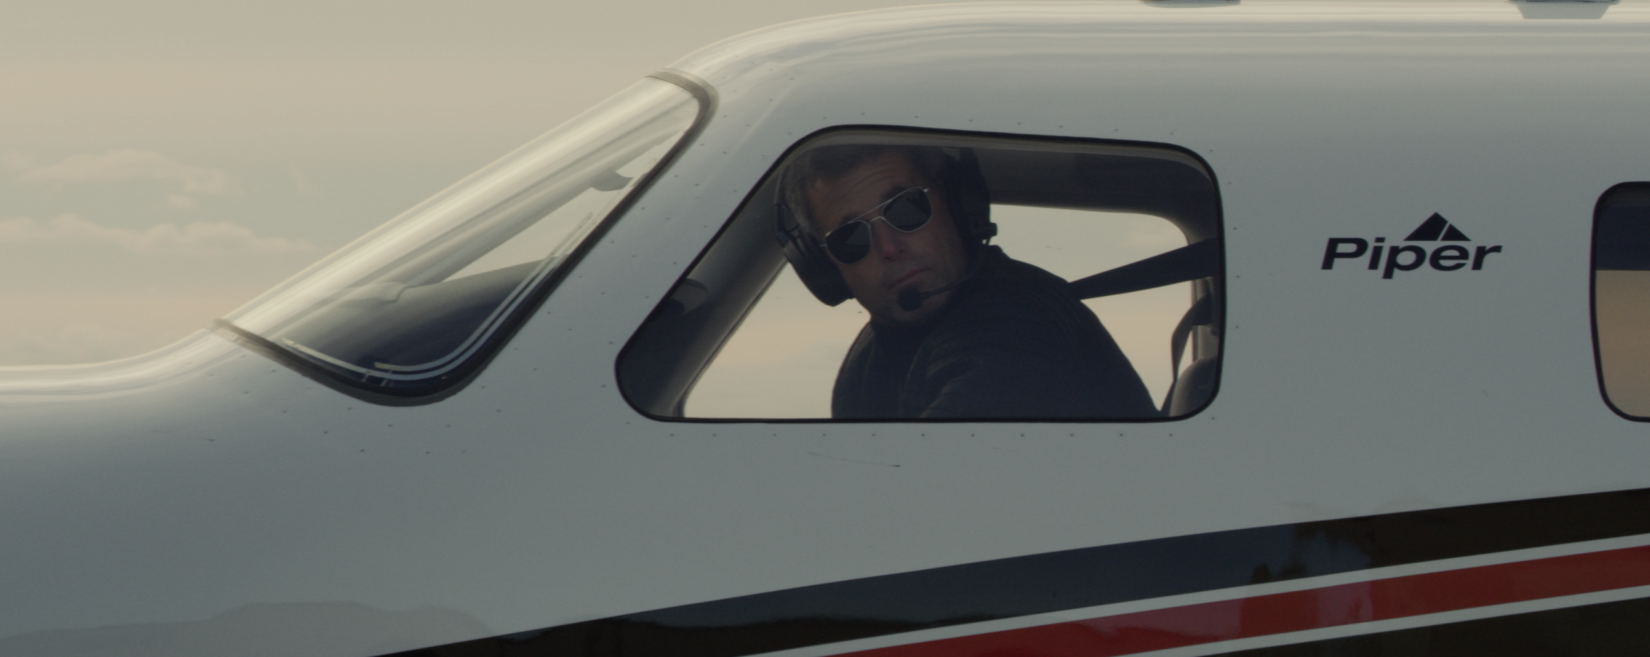 Pilot looking out of a M600